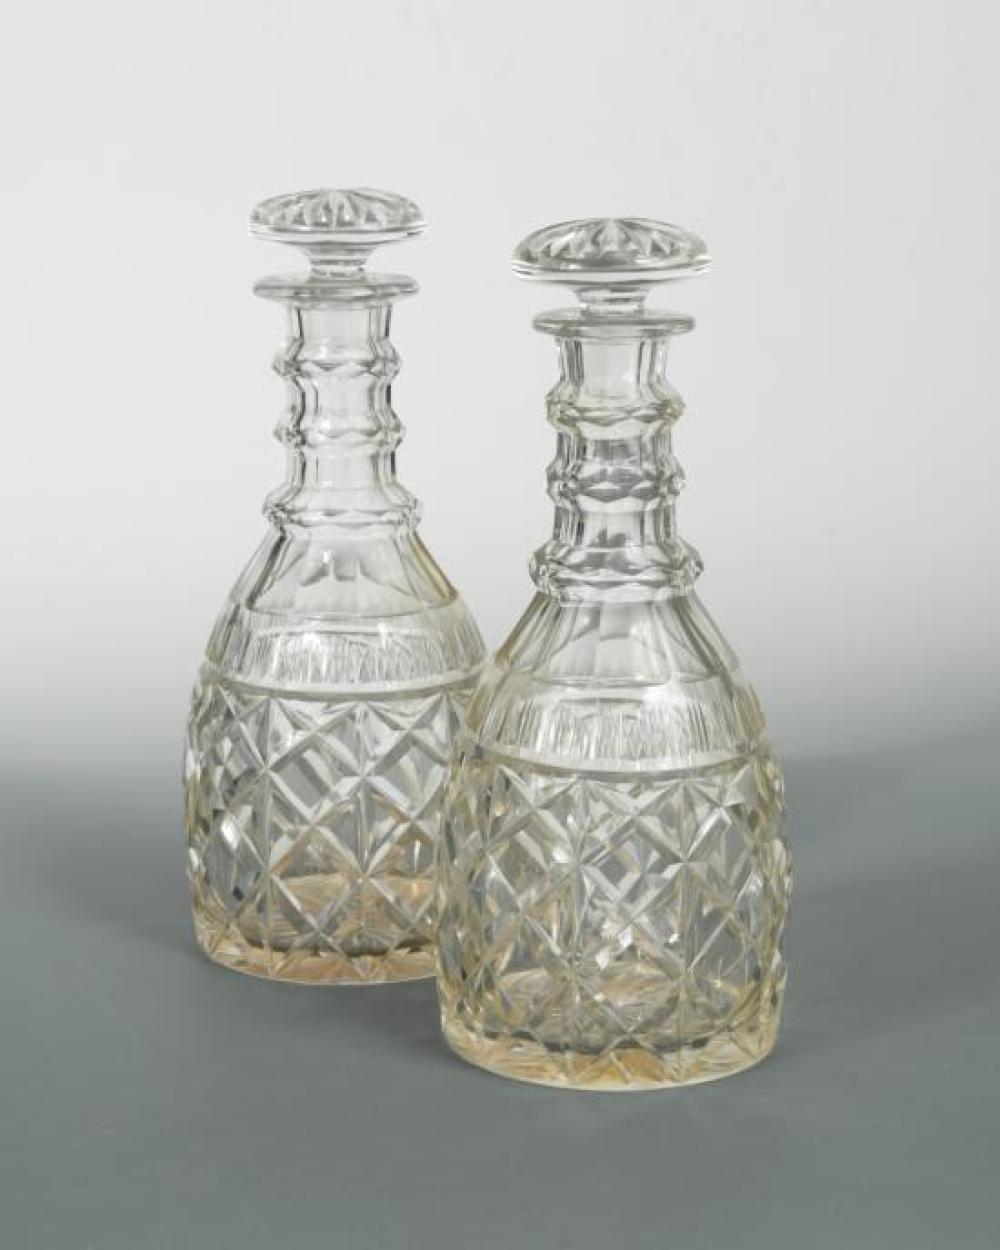 A pair of 19th century magnum decanters and stoppers,